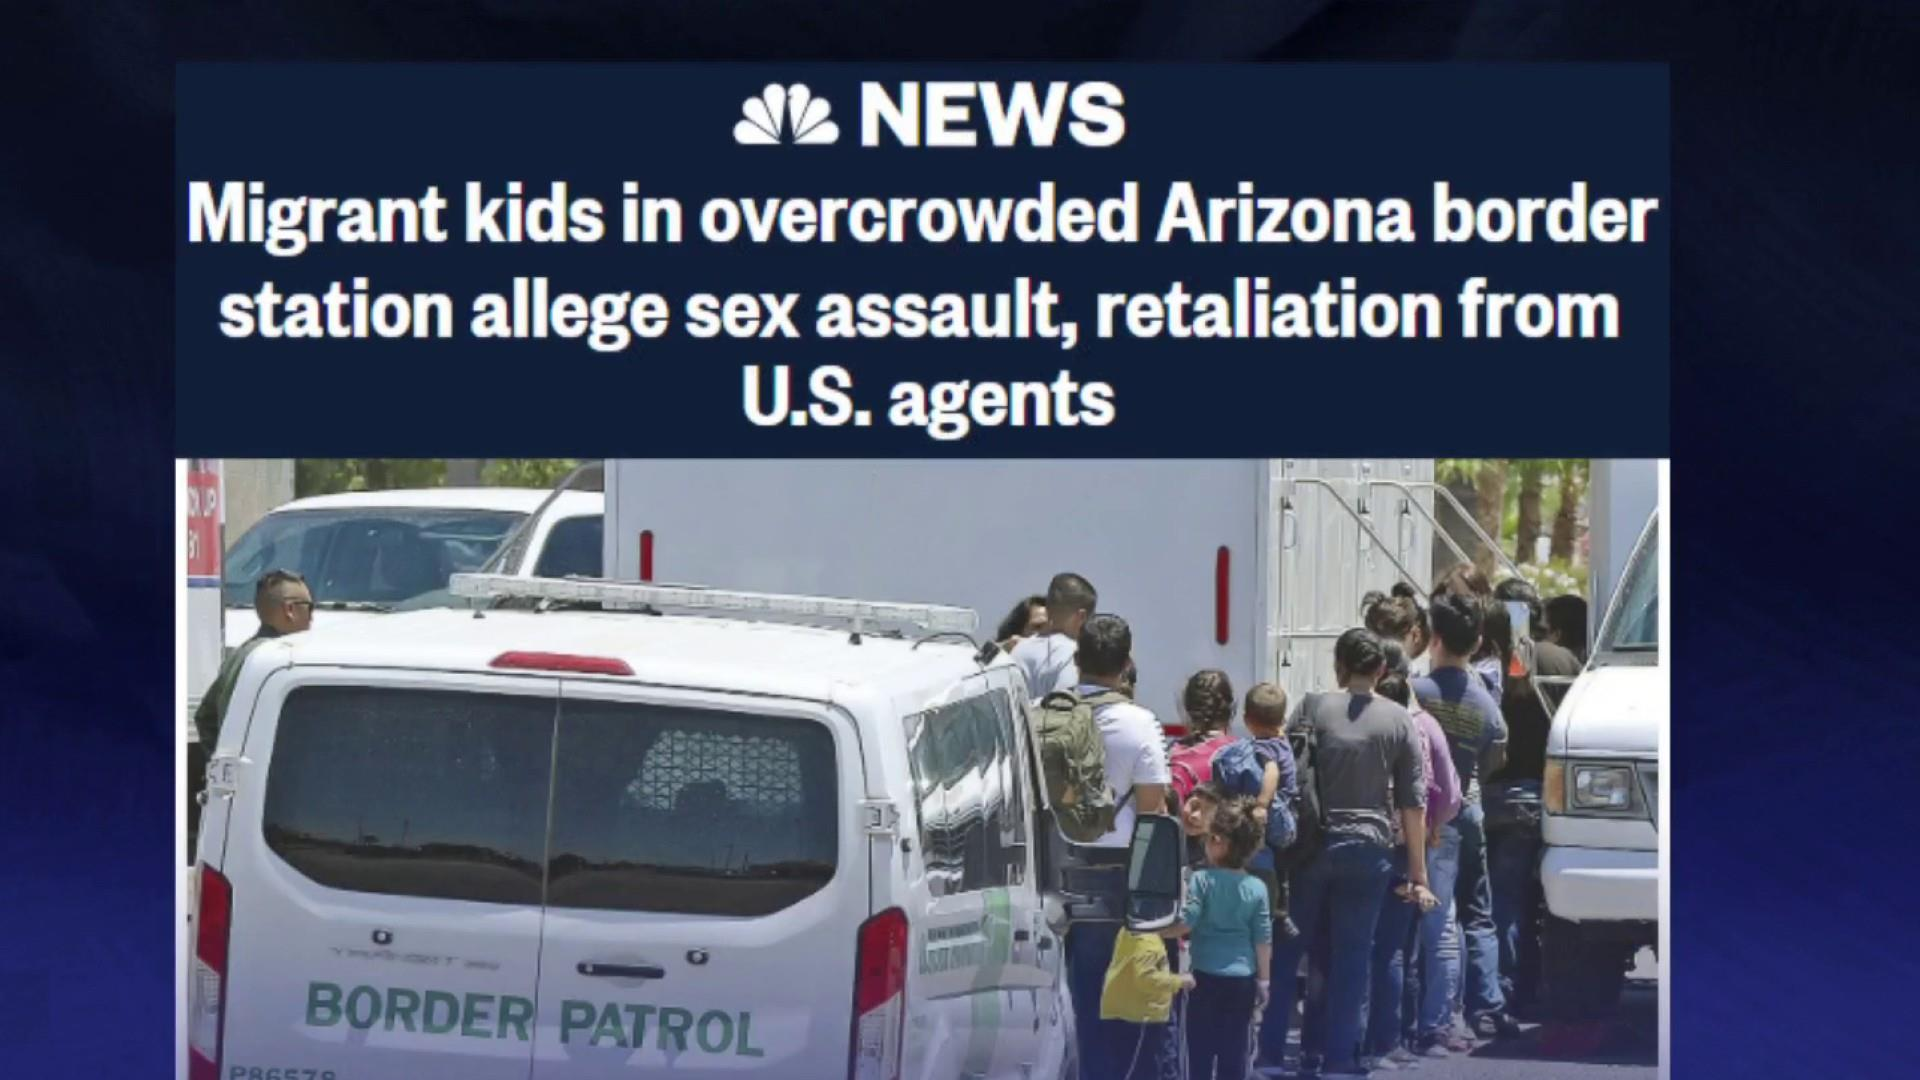 NBC: Migrant kids report disturbing conditions, misconduct by agents at Arizona border station